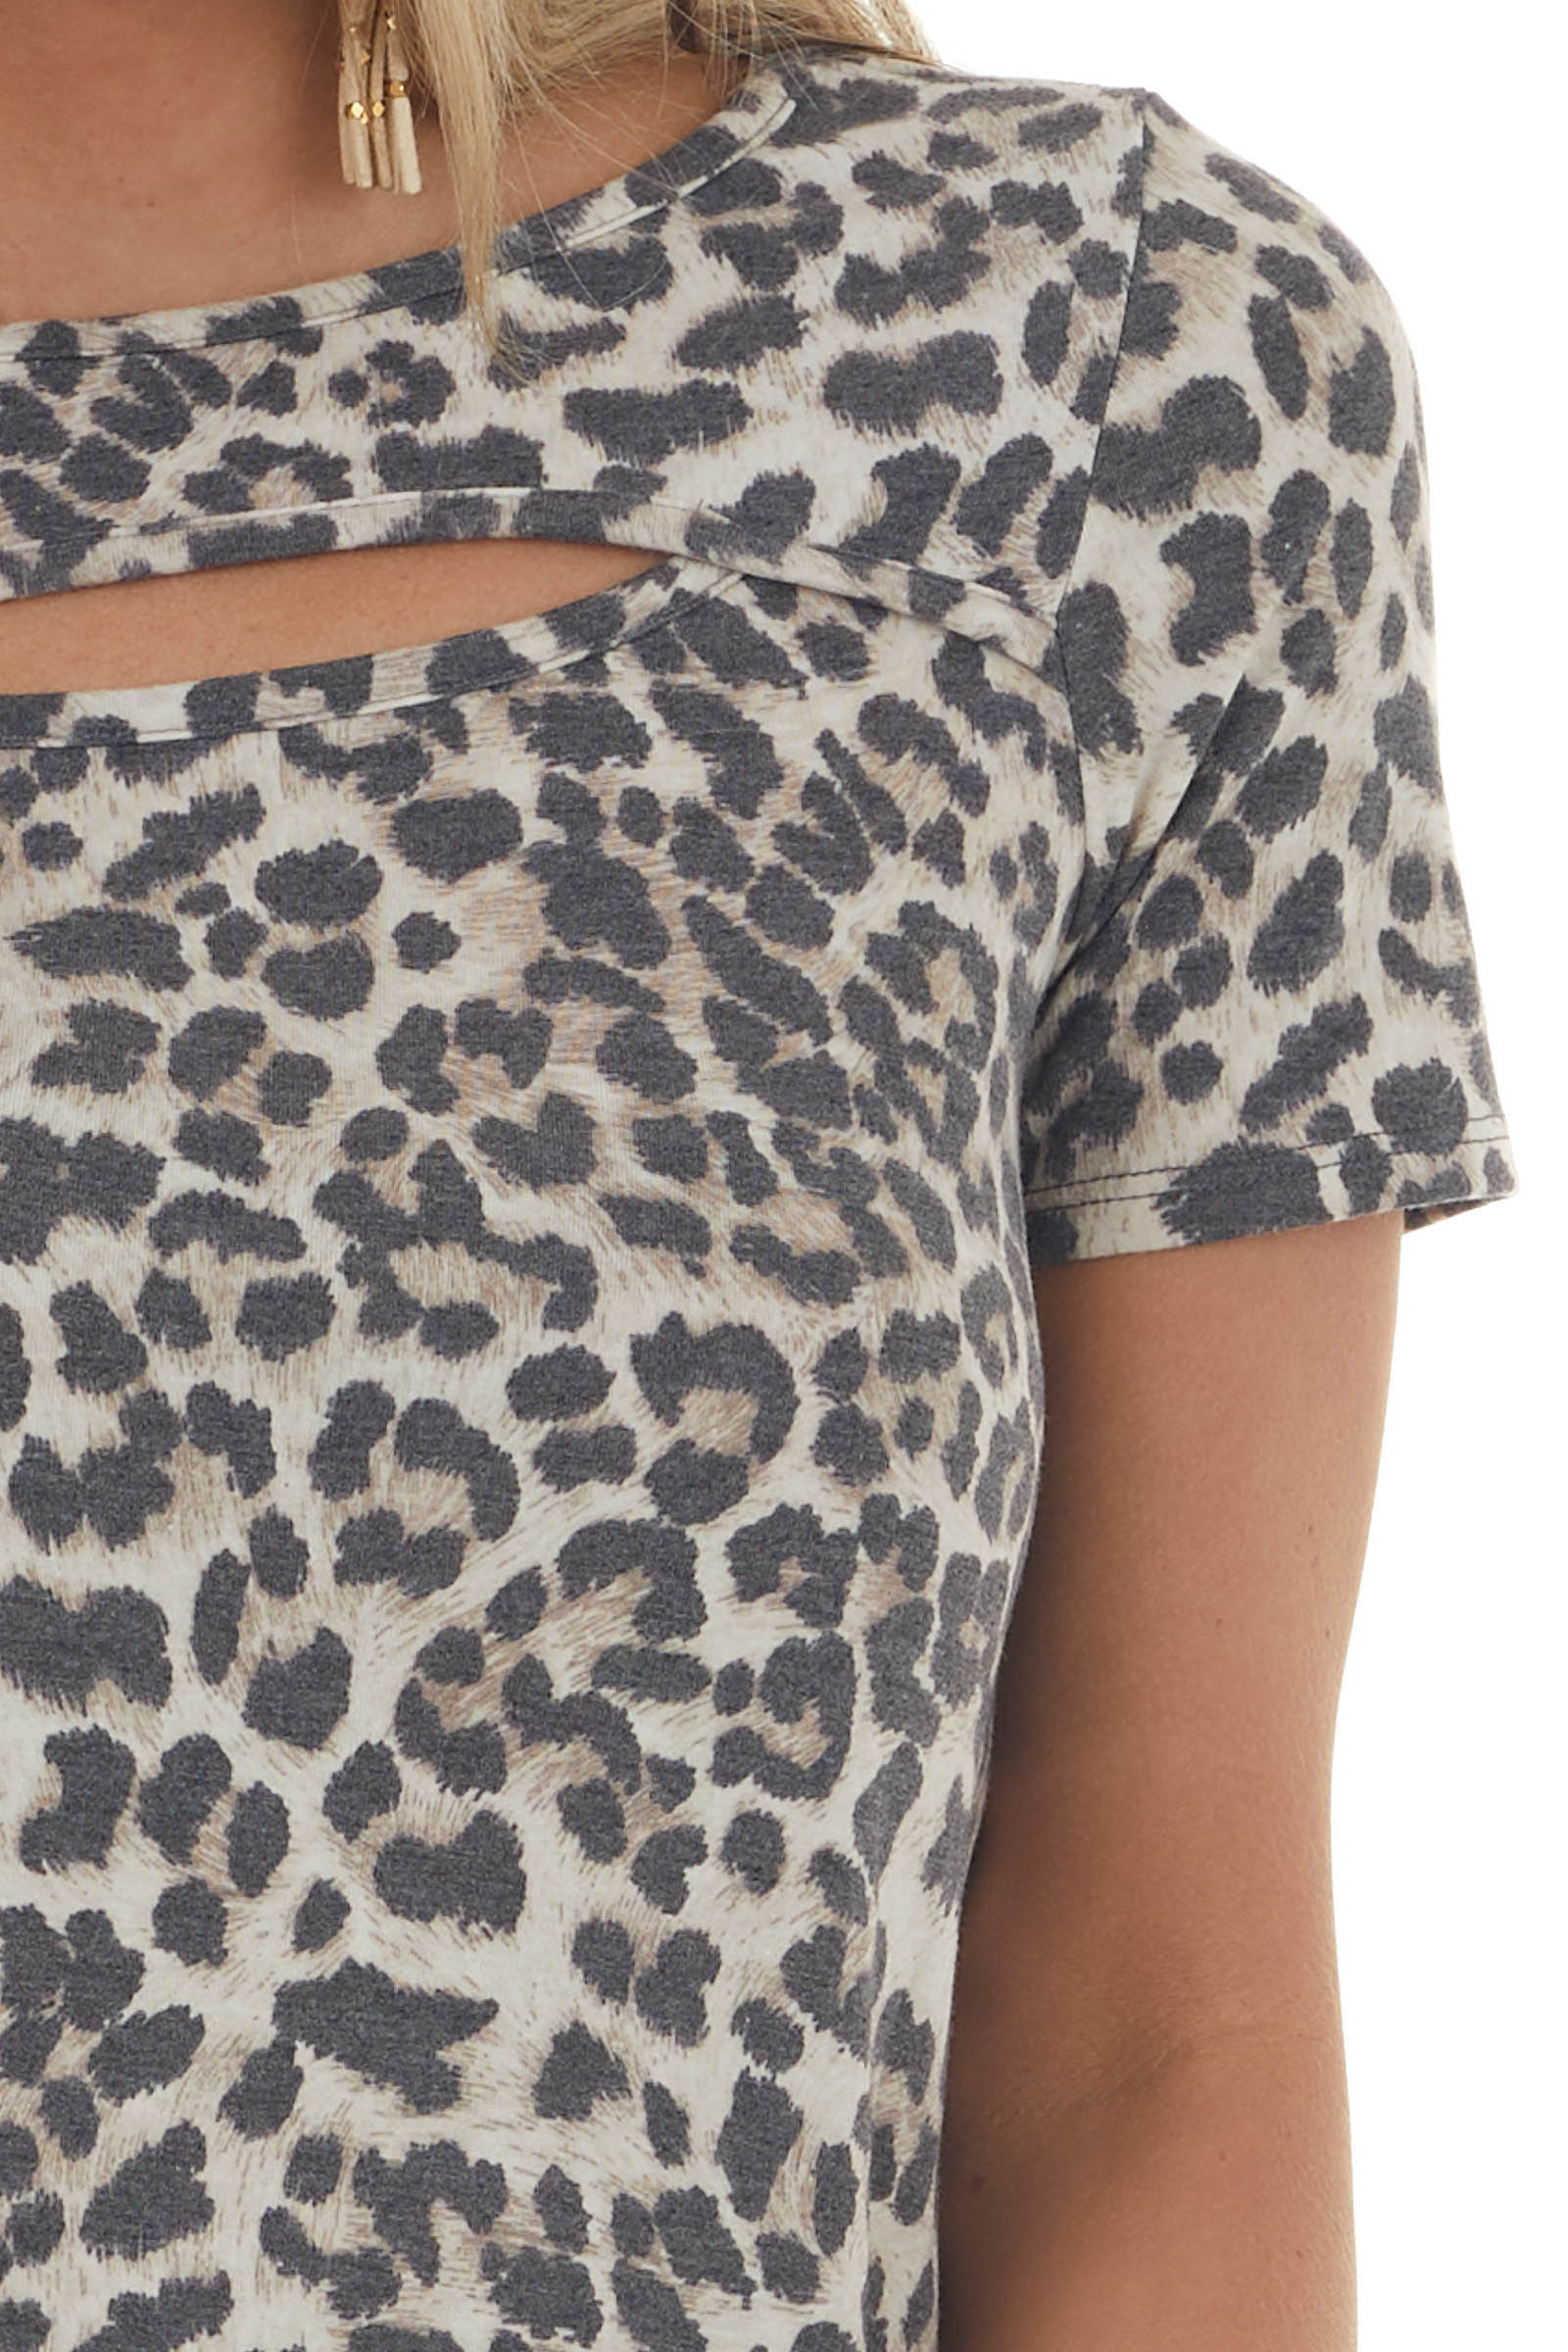 Oatmeal Leopard Print Chest Cut Out Knit Top